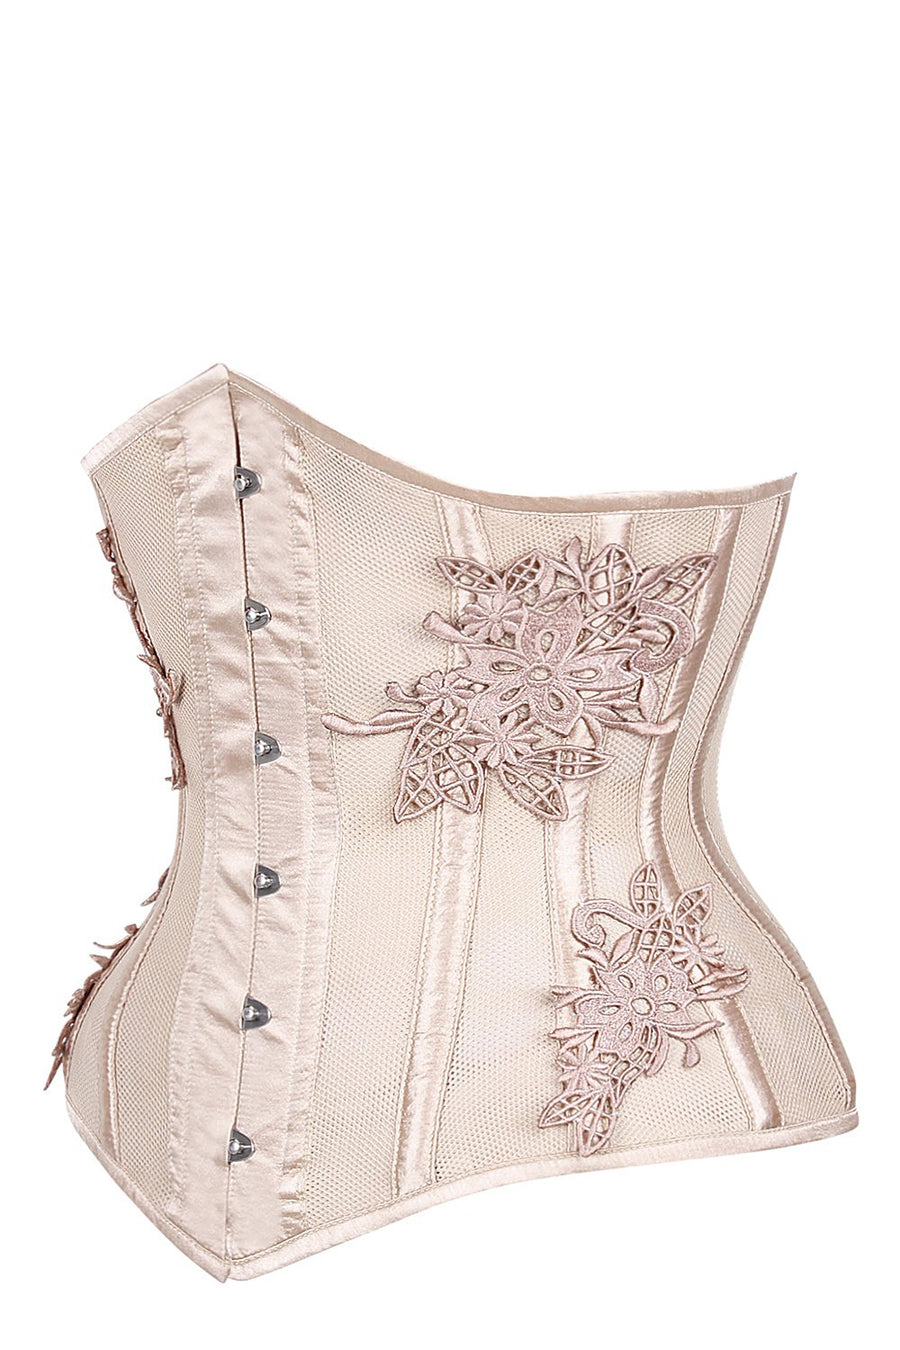 Longline Bridal Corset with Super Fine Mesh Panels and Floral Appliqué